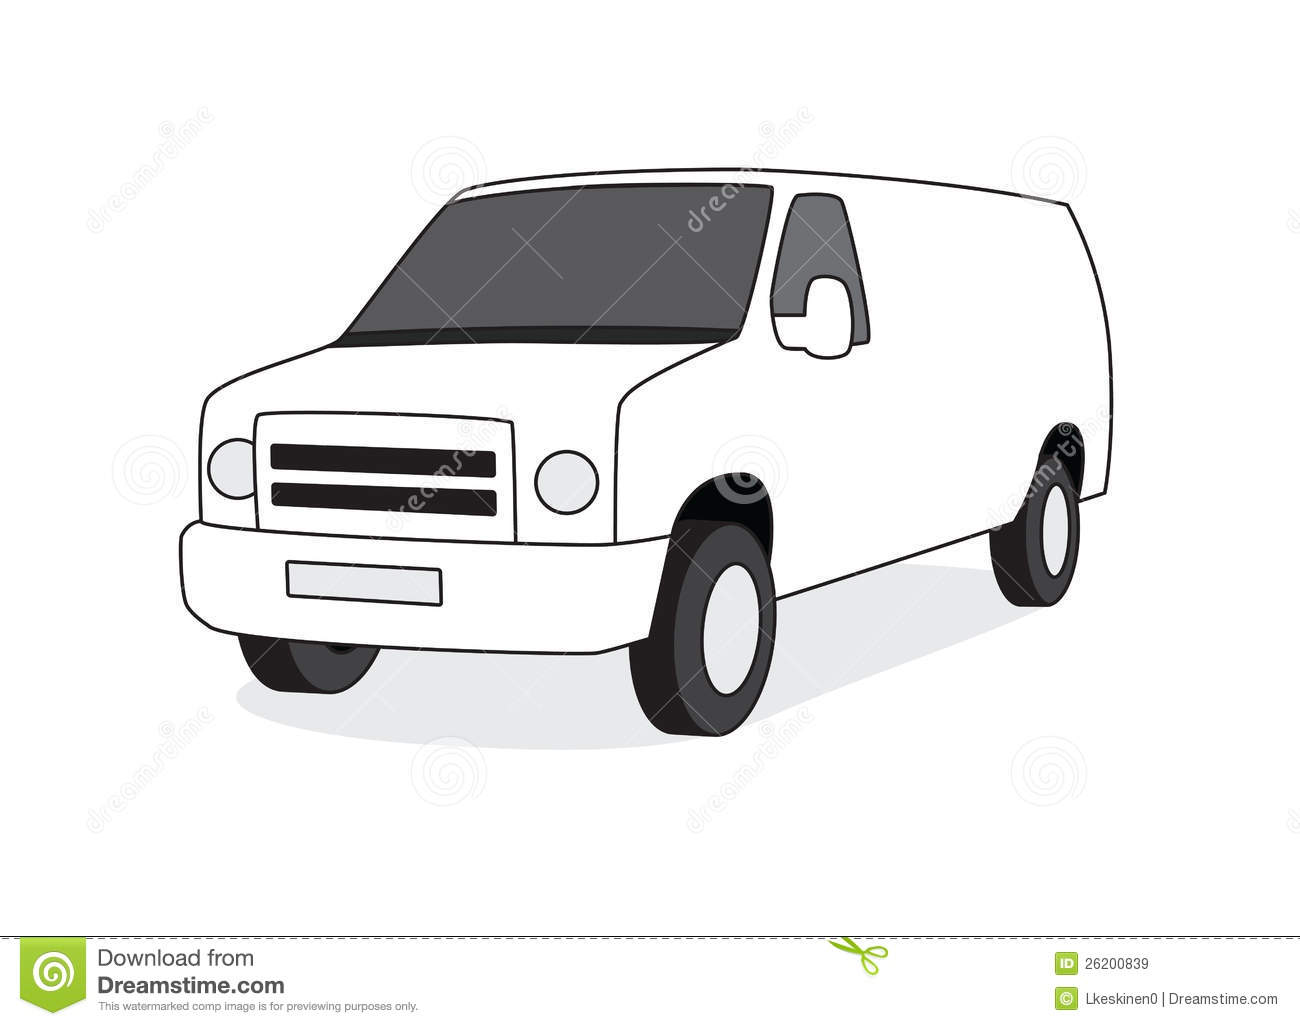 Line Drawing Van : Delivery van front view illustration royalty free stock